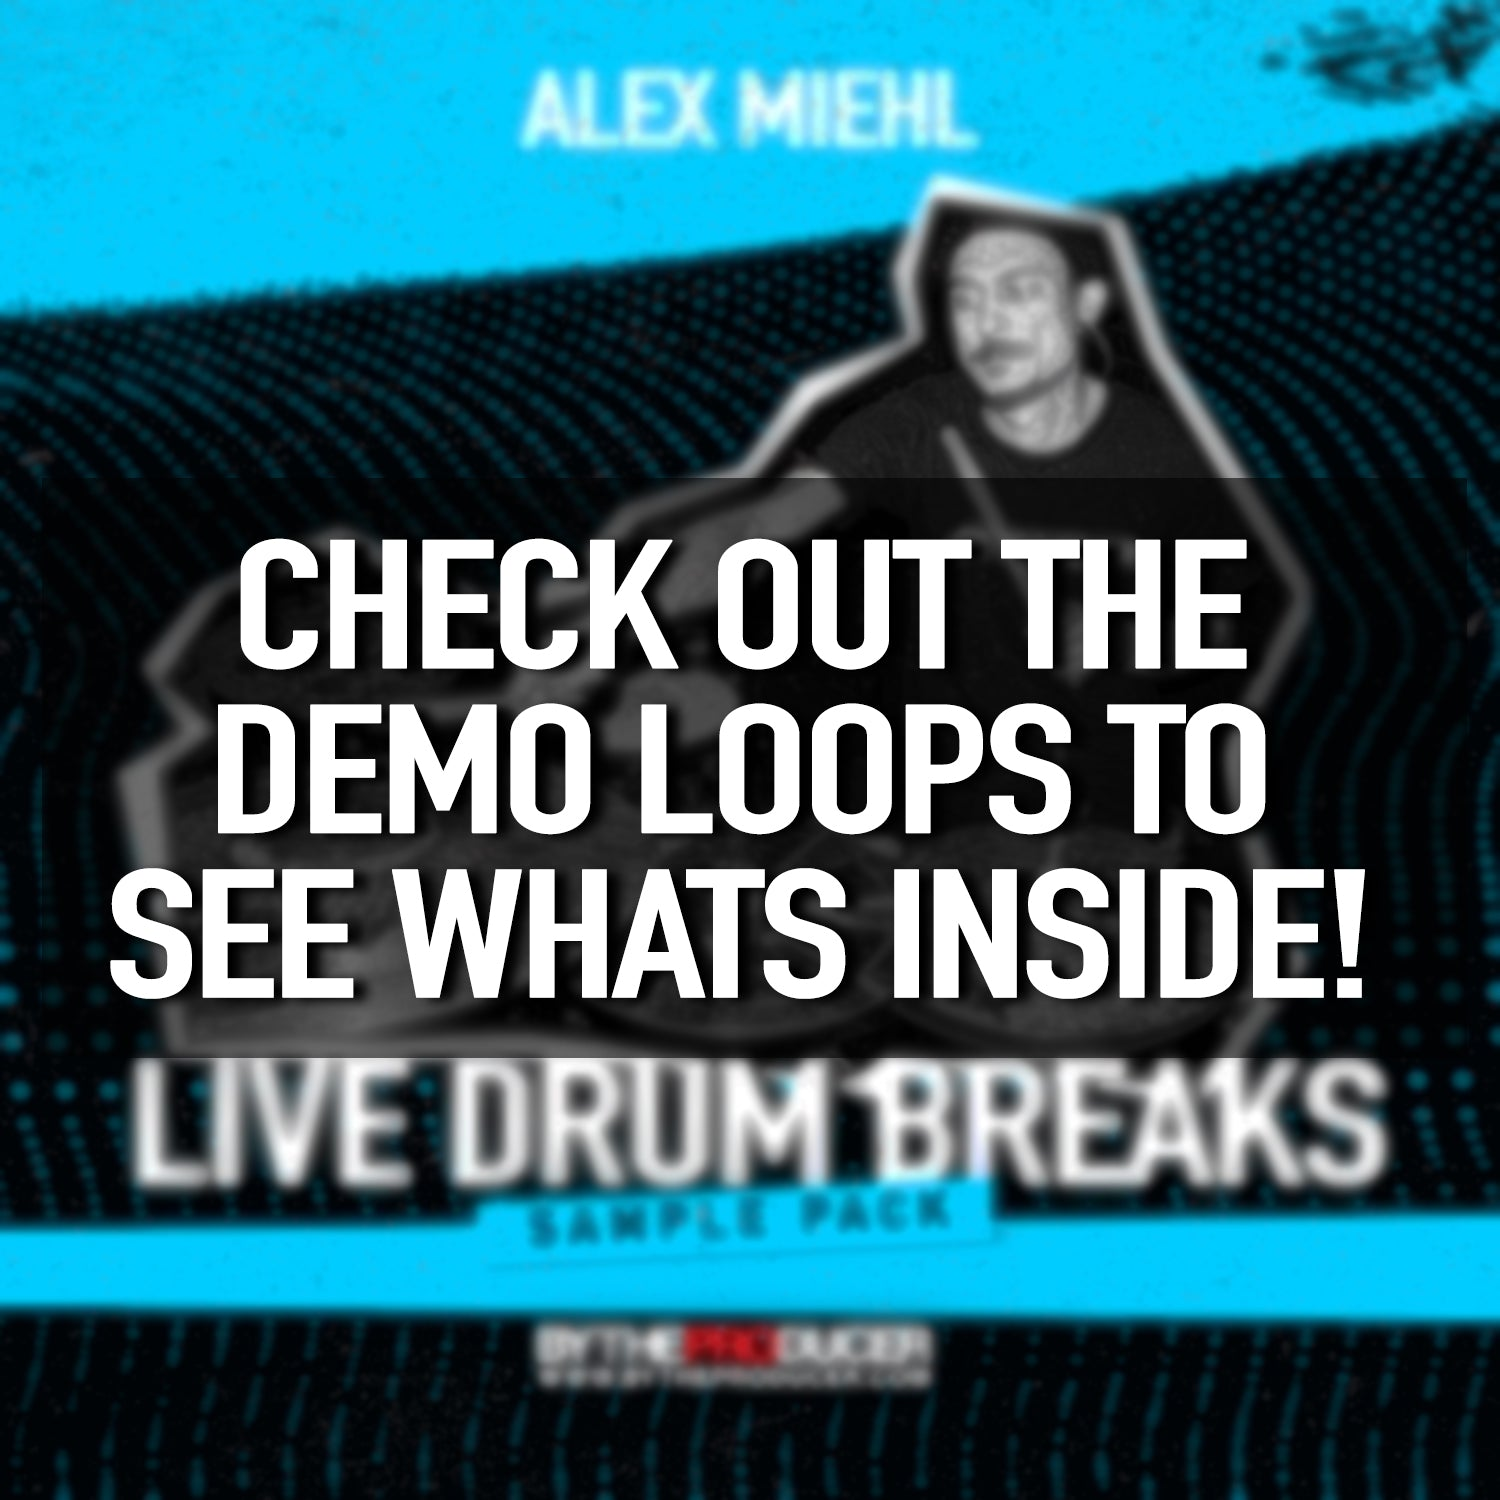 Alex Miehl - Live Drum Breaks (Official)